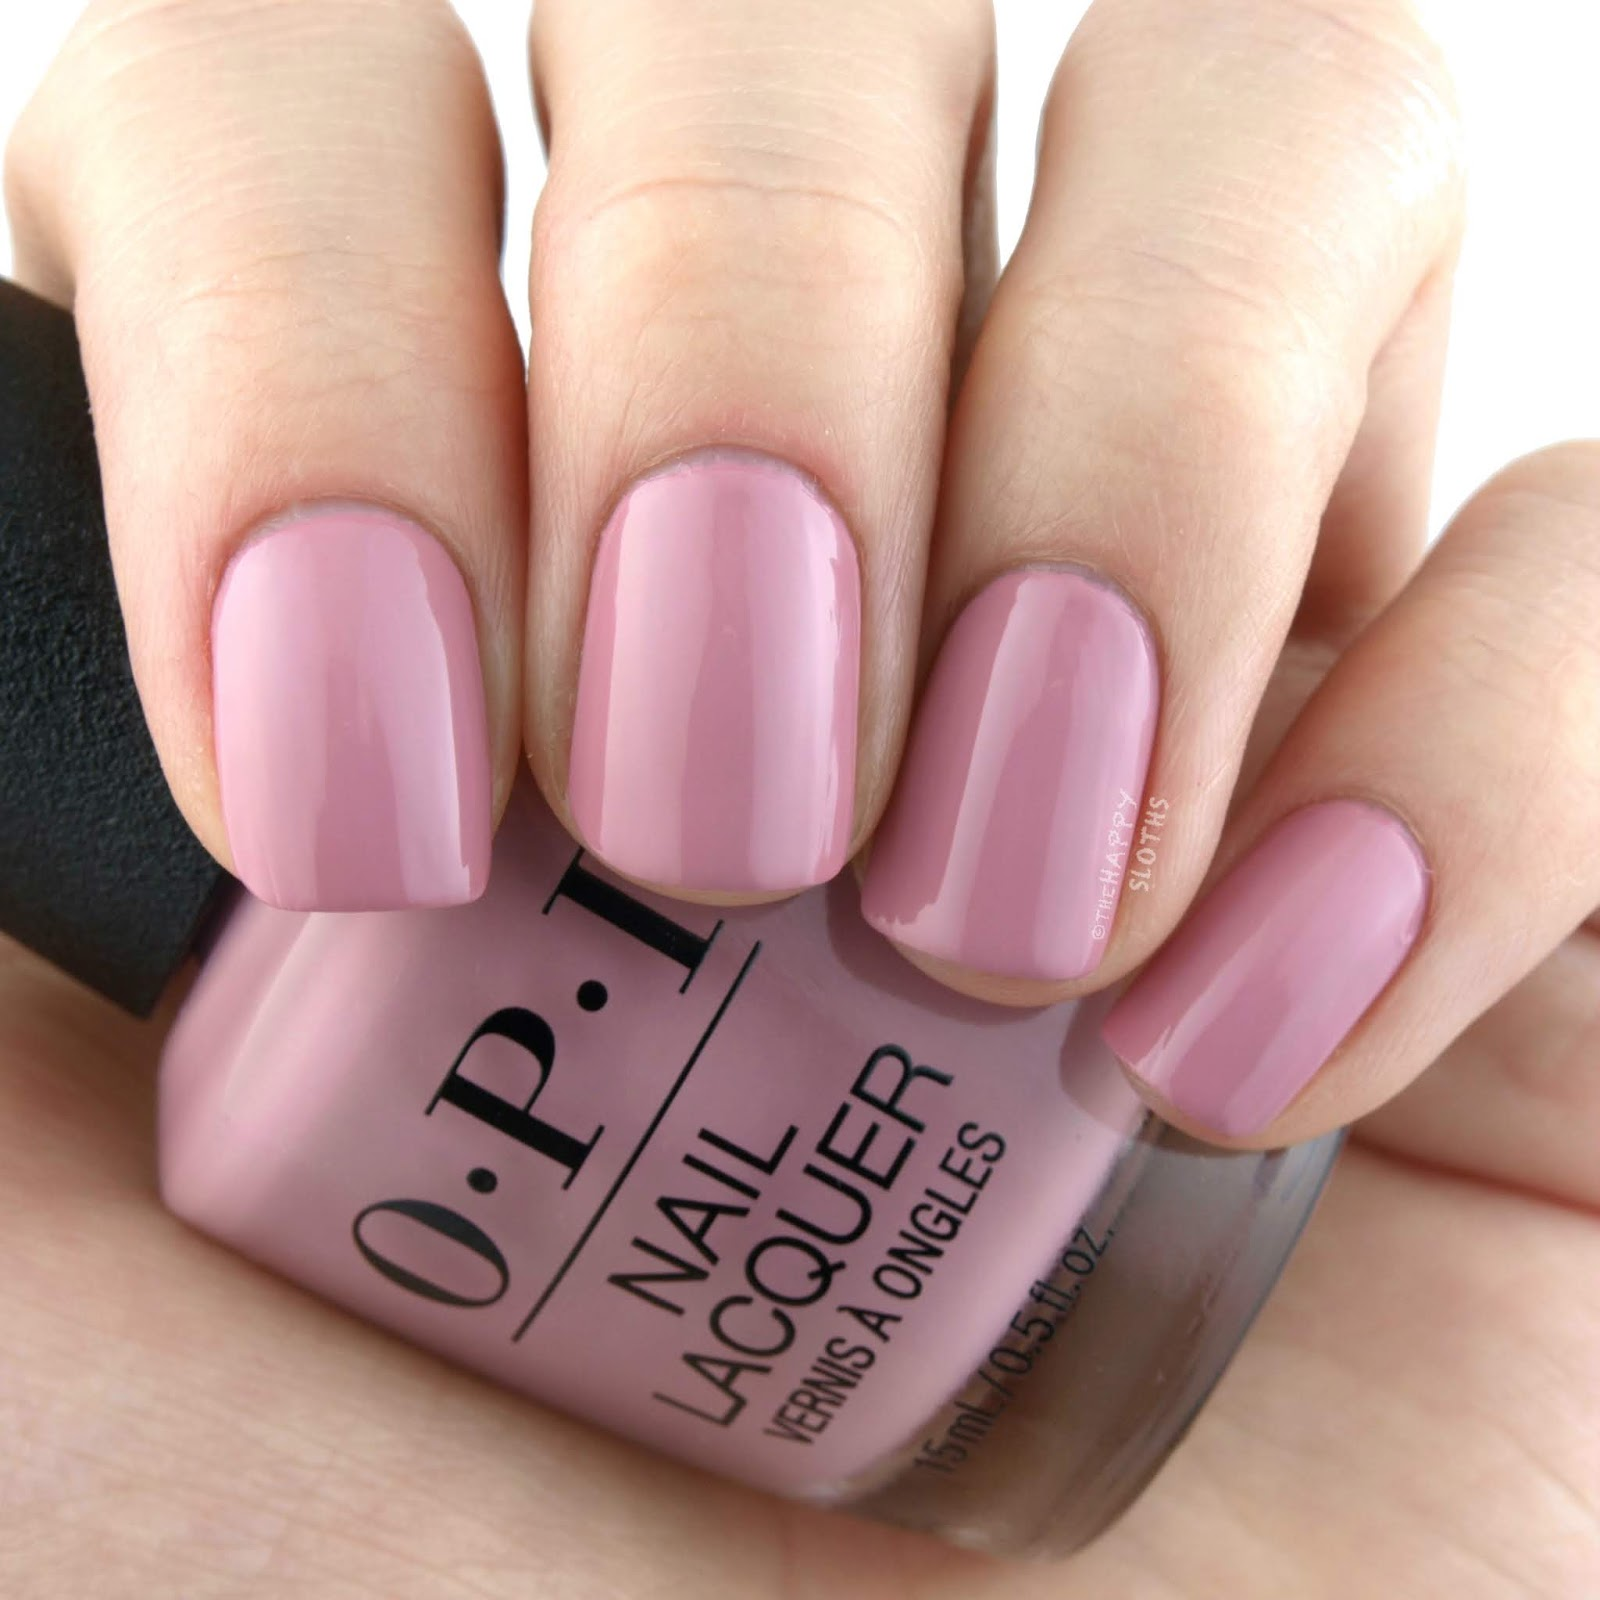 OPI Spring 2019 Tokyo Collection | Rice Rice Baby: Review and Swatches